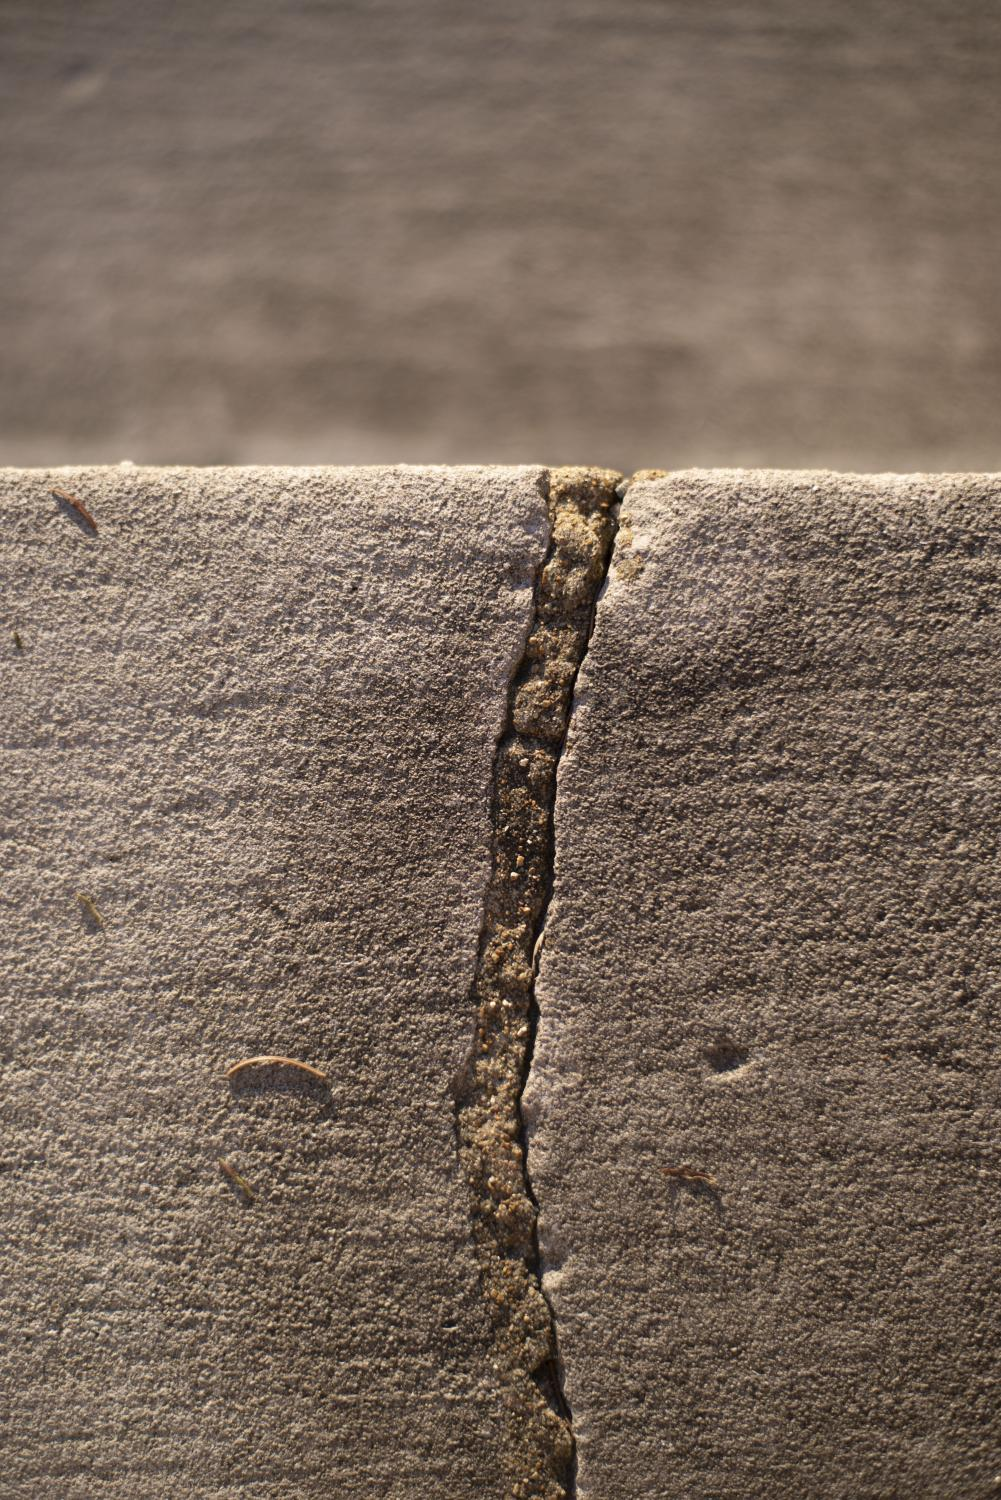 A crack in the concrete is filled with foam Oct. 5 at the University of Missouri in Columbia, Mo.